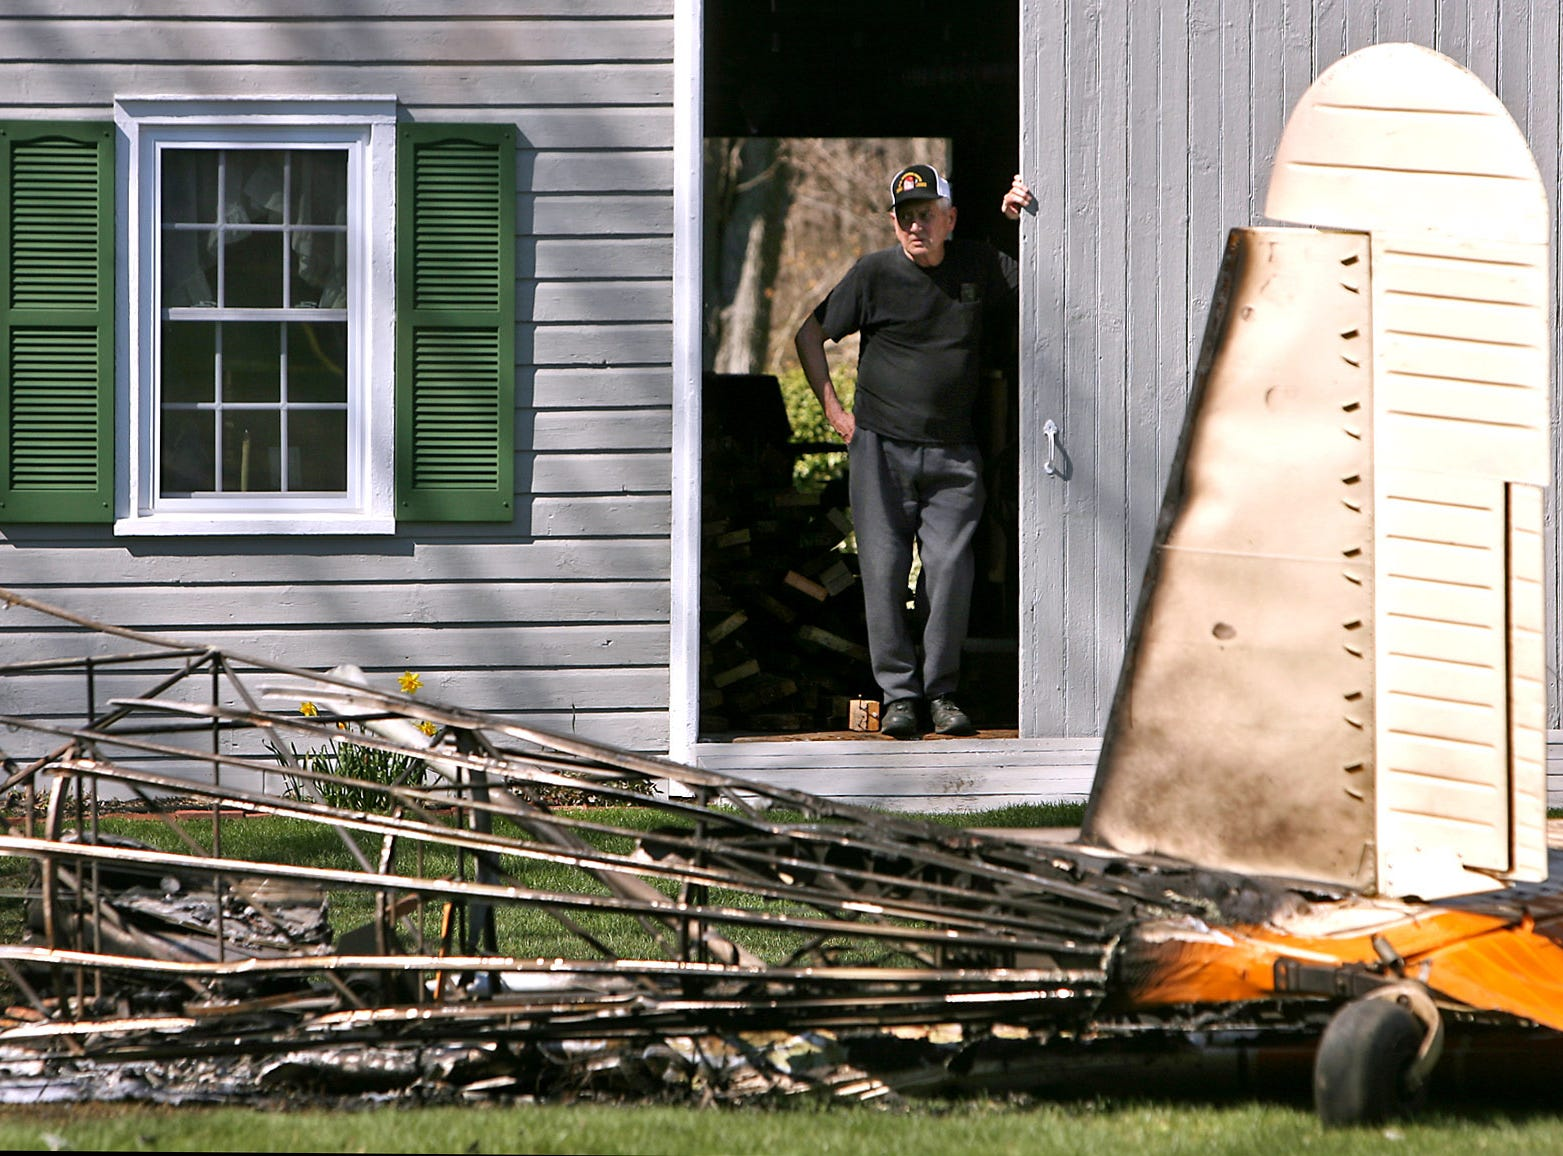 John Smith looks on from his barn at the wreckage of a small plane after a fiery crash shortly after takeoff from Lincoln Park Airport. April 20, 2007, Lincoln Park, NJ